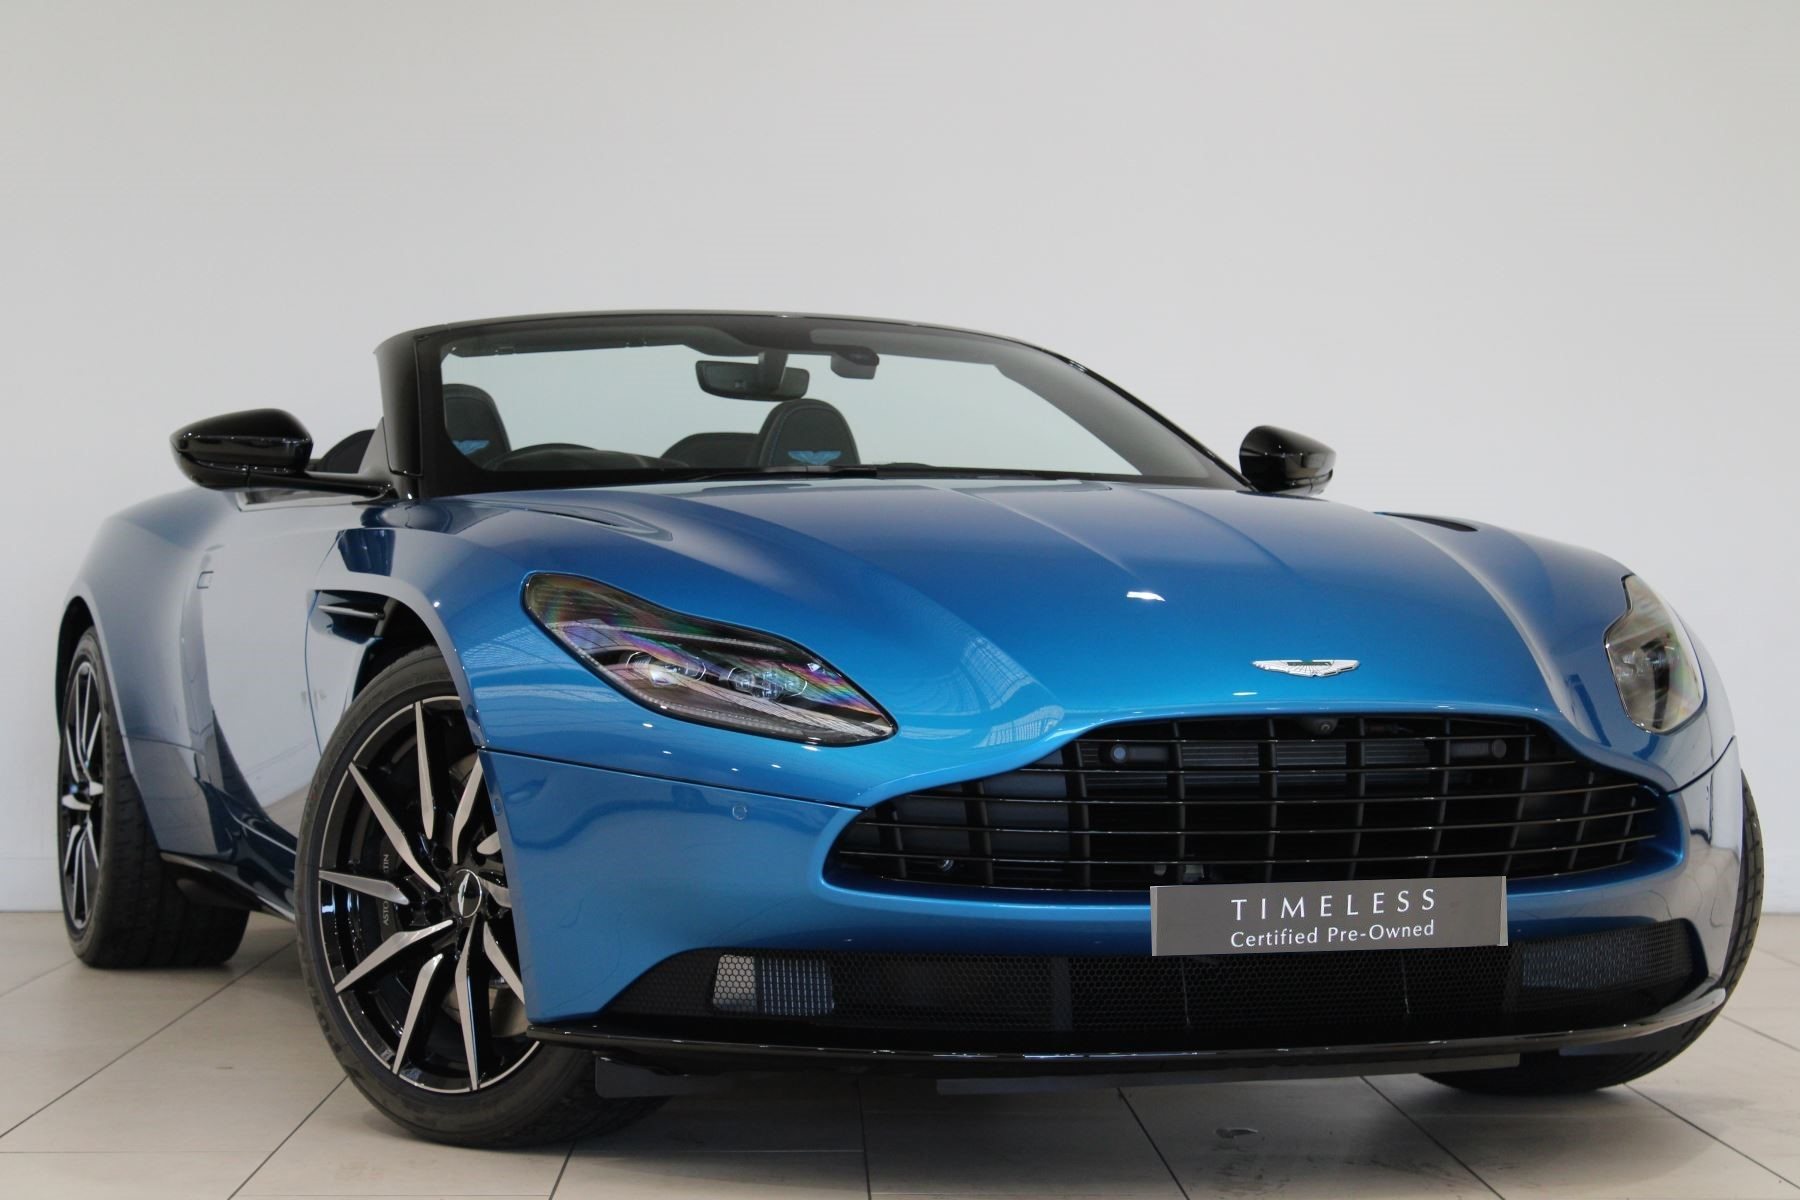 Aston Martin DB11 Volante V8 Touchtronic 4.0 Automatic 2 door Convertible (2020)